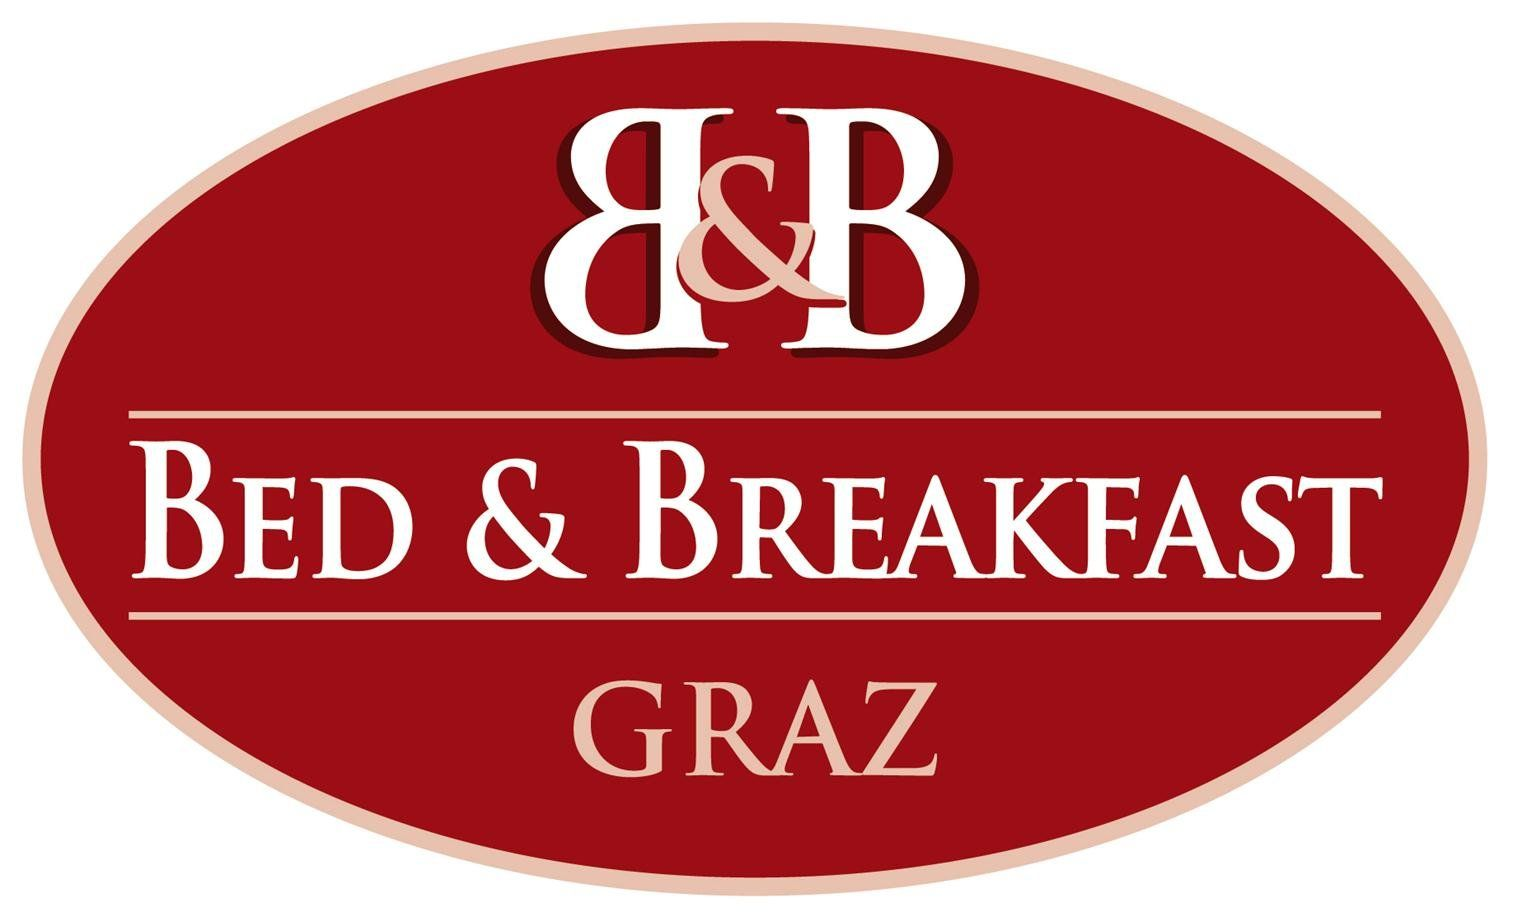 Apartments Graz operated by Hotel B&B